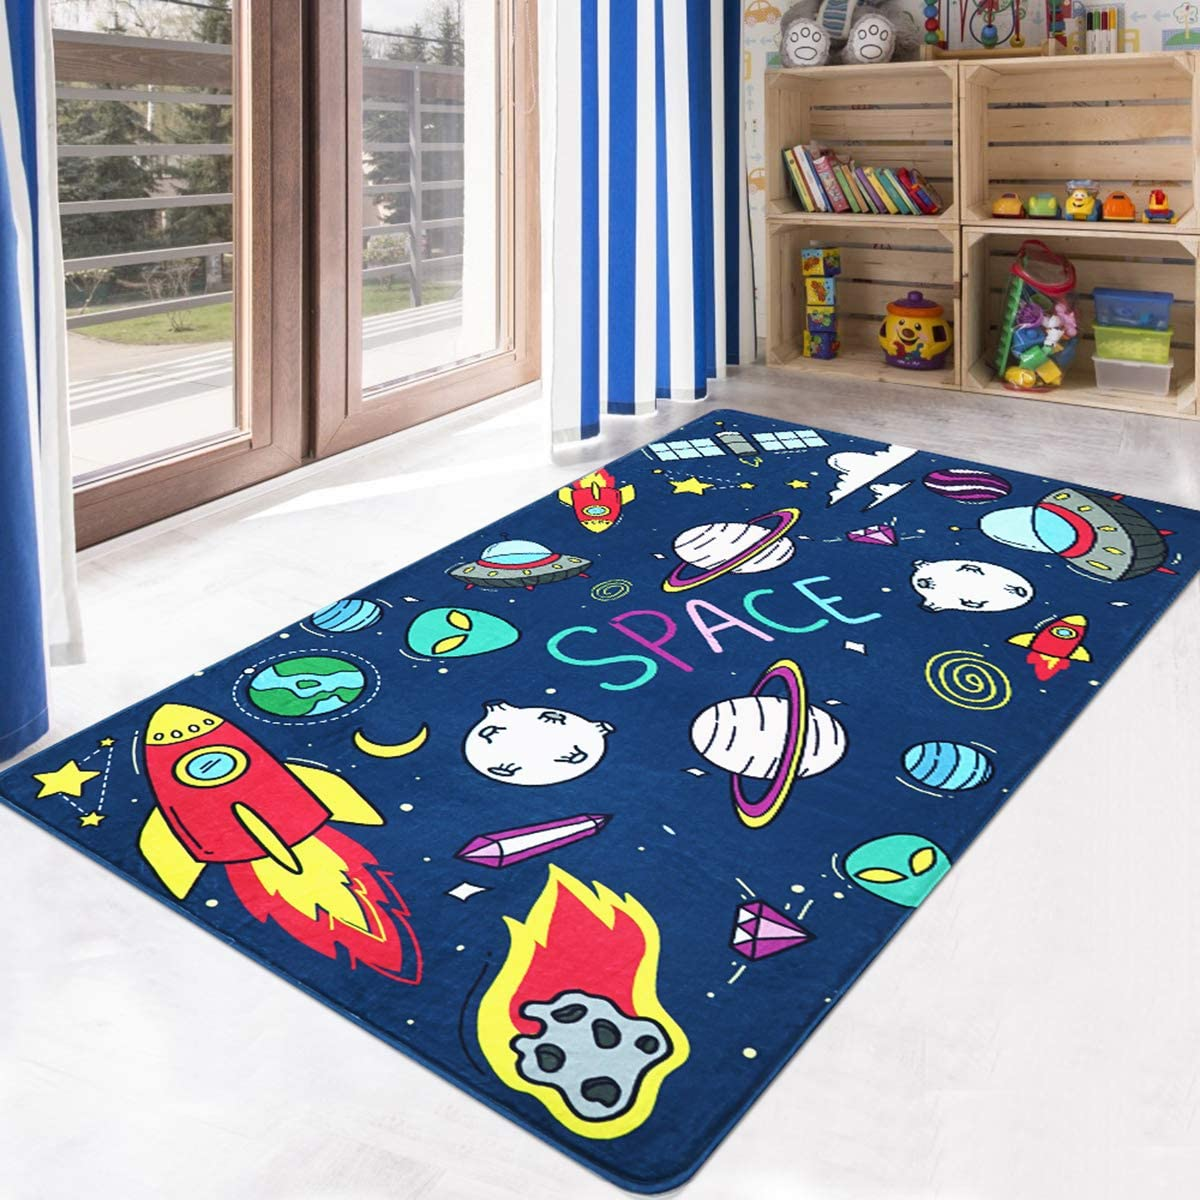 Super Soft Foam Kids Play Area Rugs 3 x 5 Non-Slip Childrens Carpet World Map Animals Educational Learning /& Game/for Living Room Bedroom Playroom Nursery Best Shower Gift LIVEBOX Play Mat